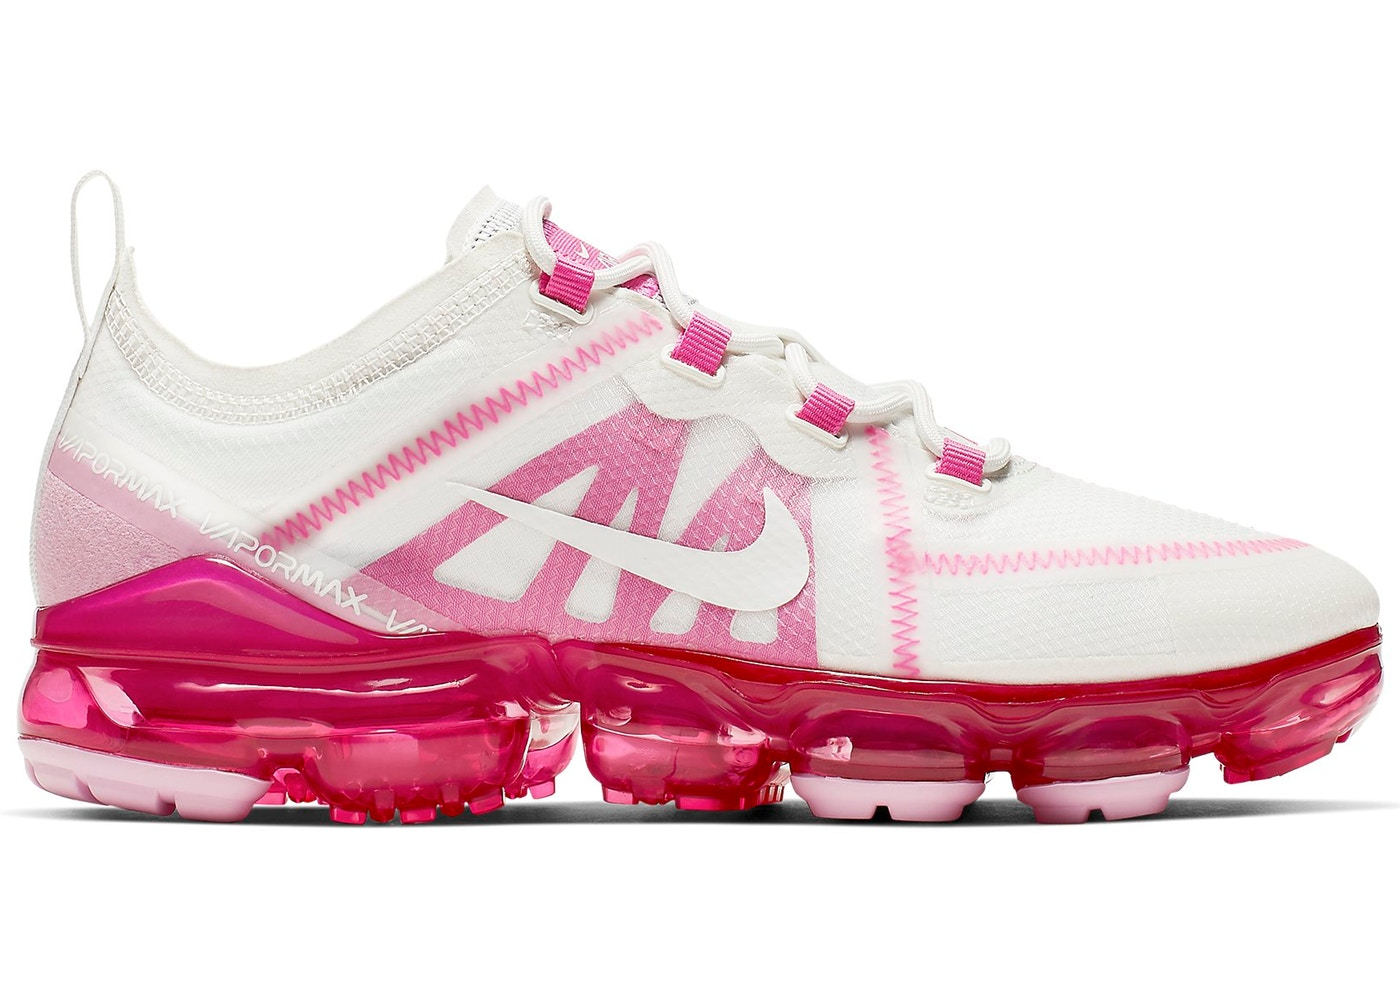 438a39a778 Air VaporMax 2019 Summit White Pink Rise (W) - AR6632-105